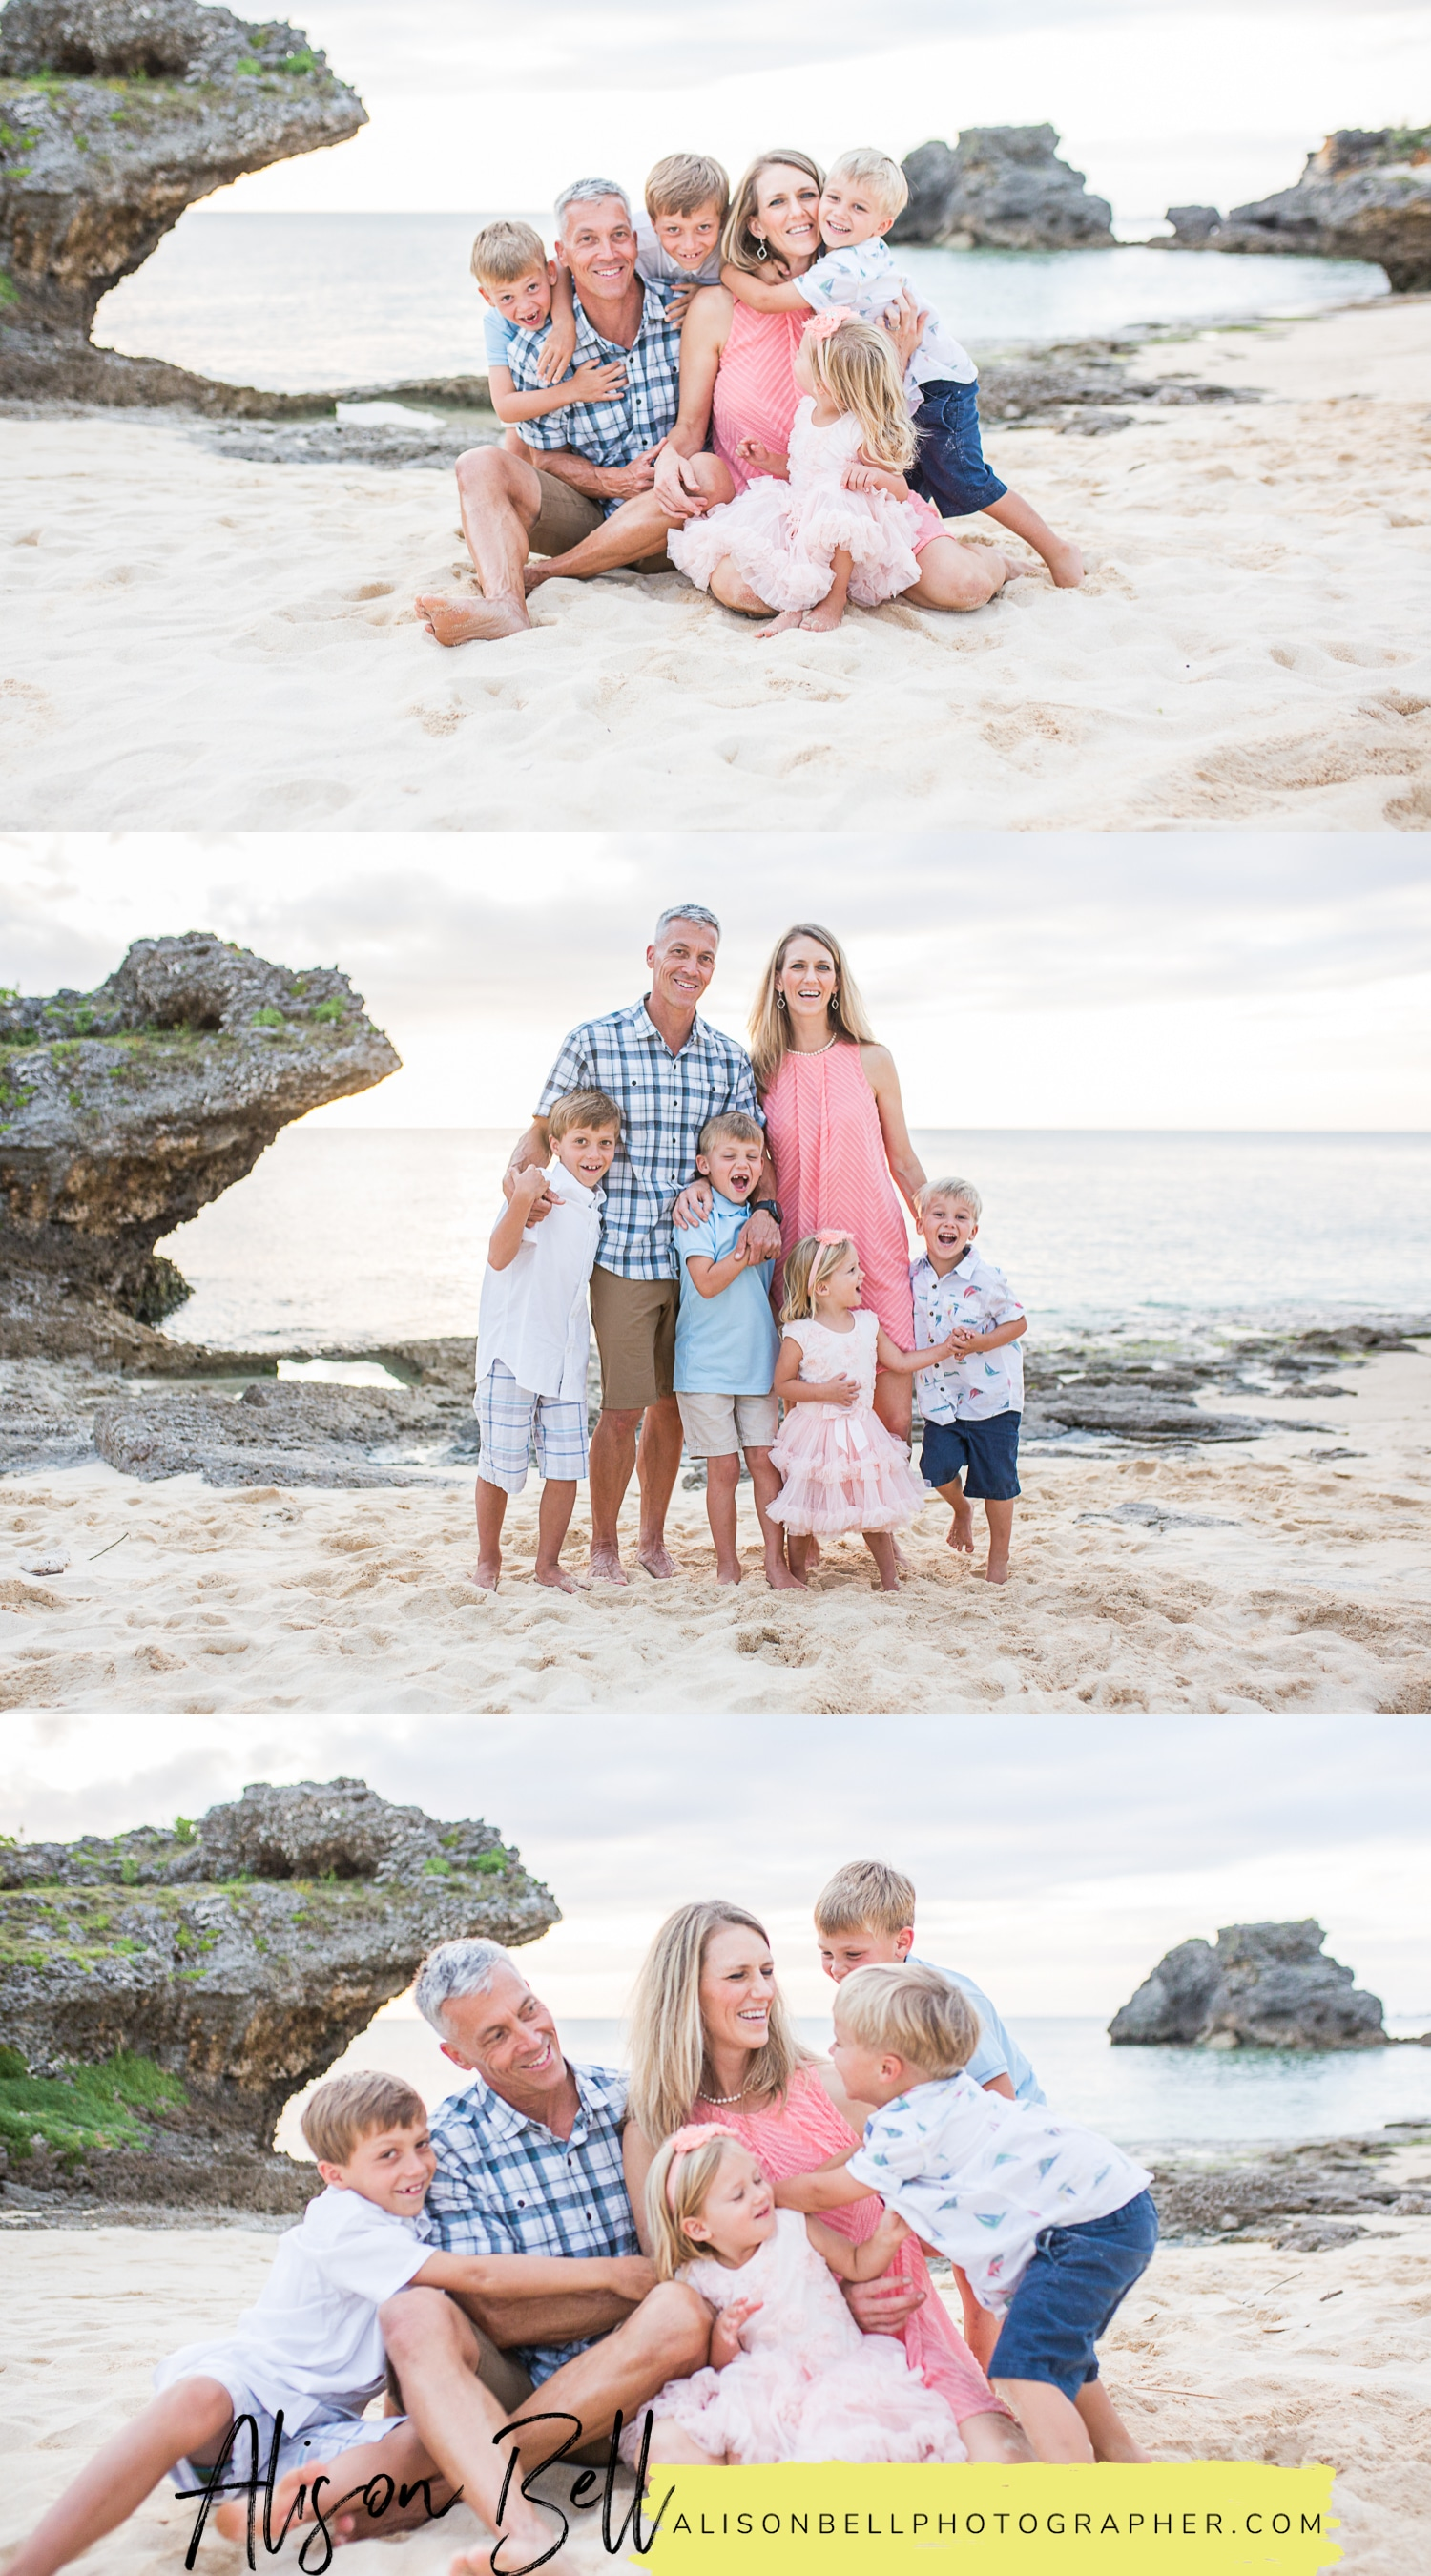 Big family, young kids family photo session by Alison Bell, Photographer. #alisonbellphotog alisonbellphotographer.com